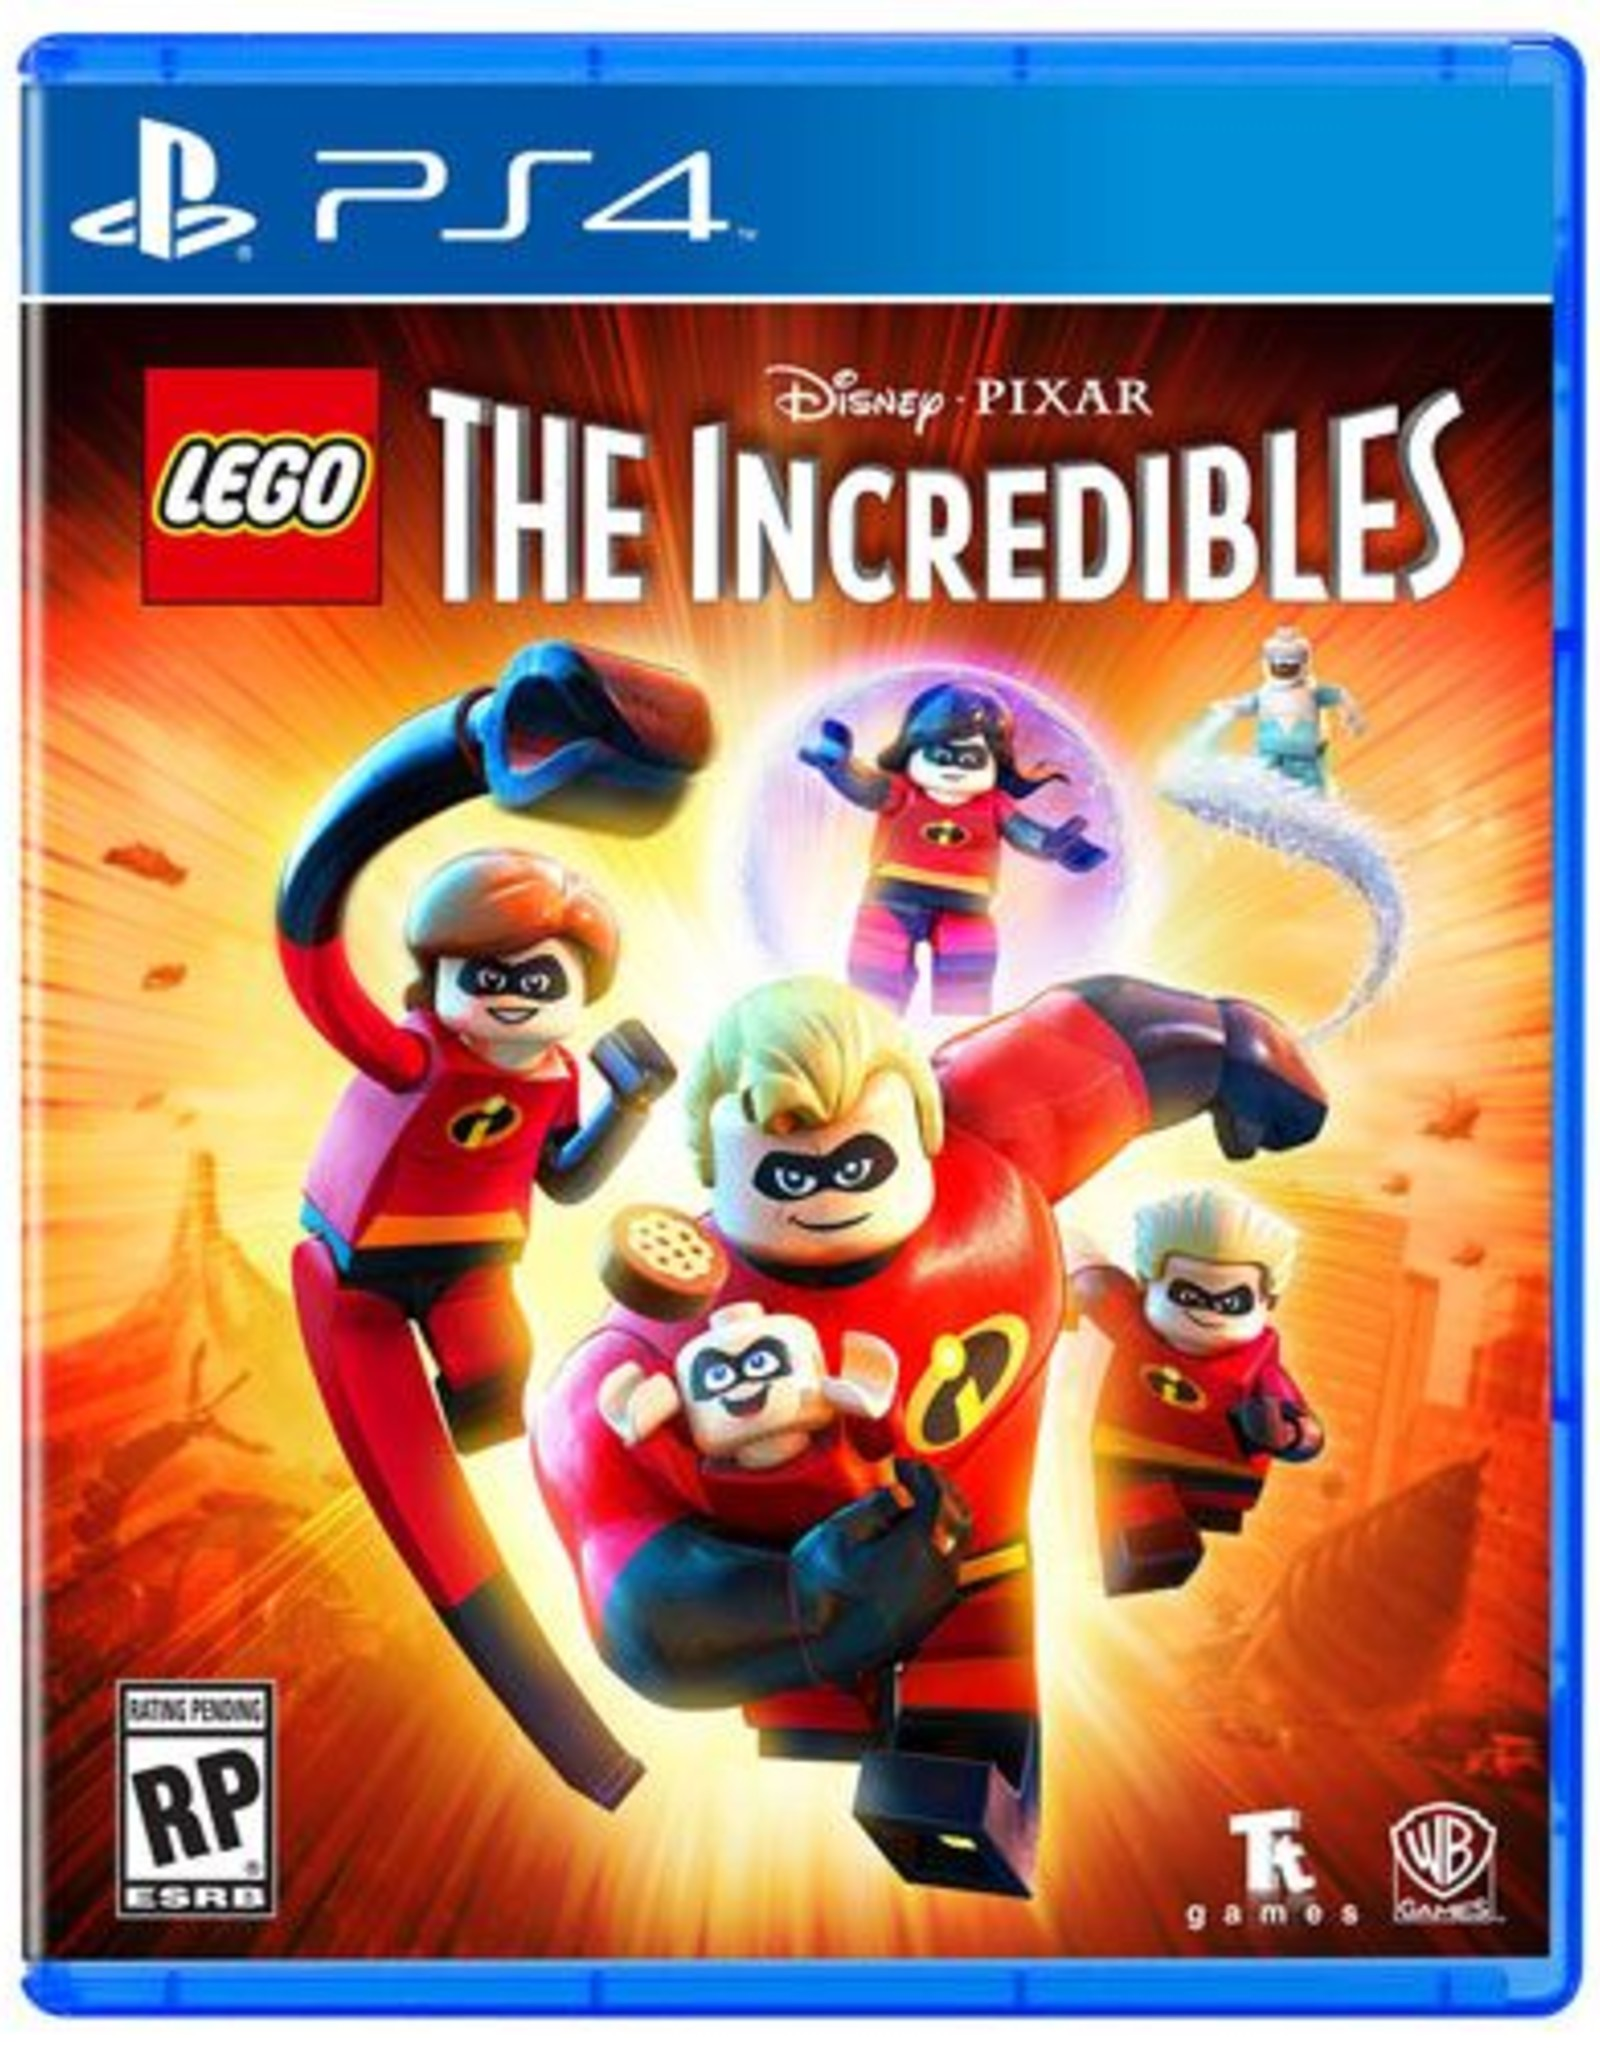 LEGO The Incredibles -PS4 DIGITAL